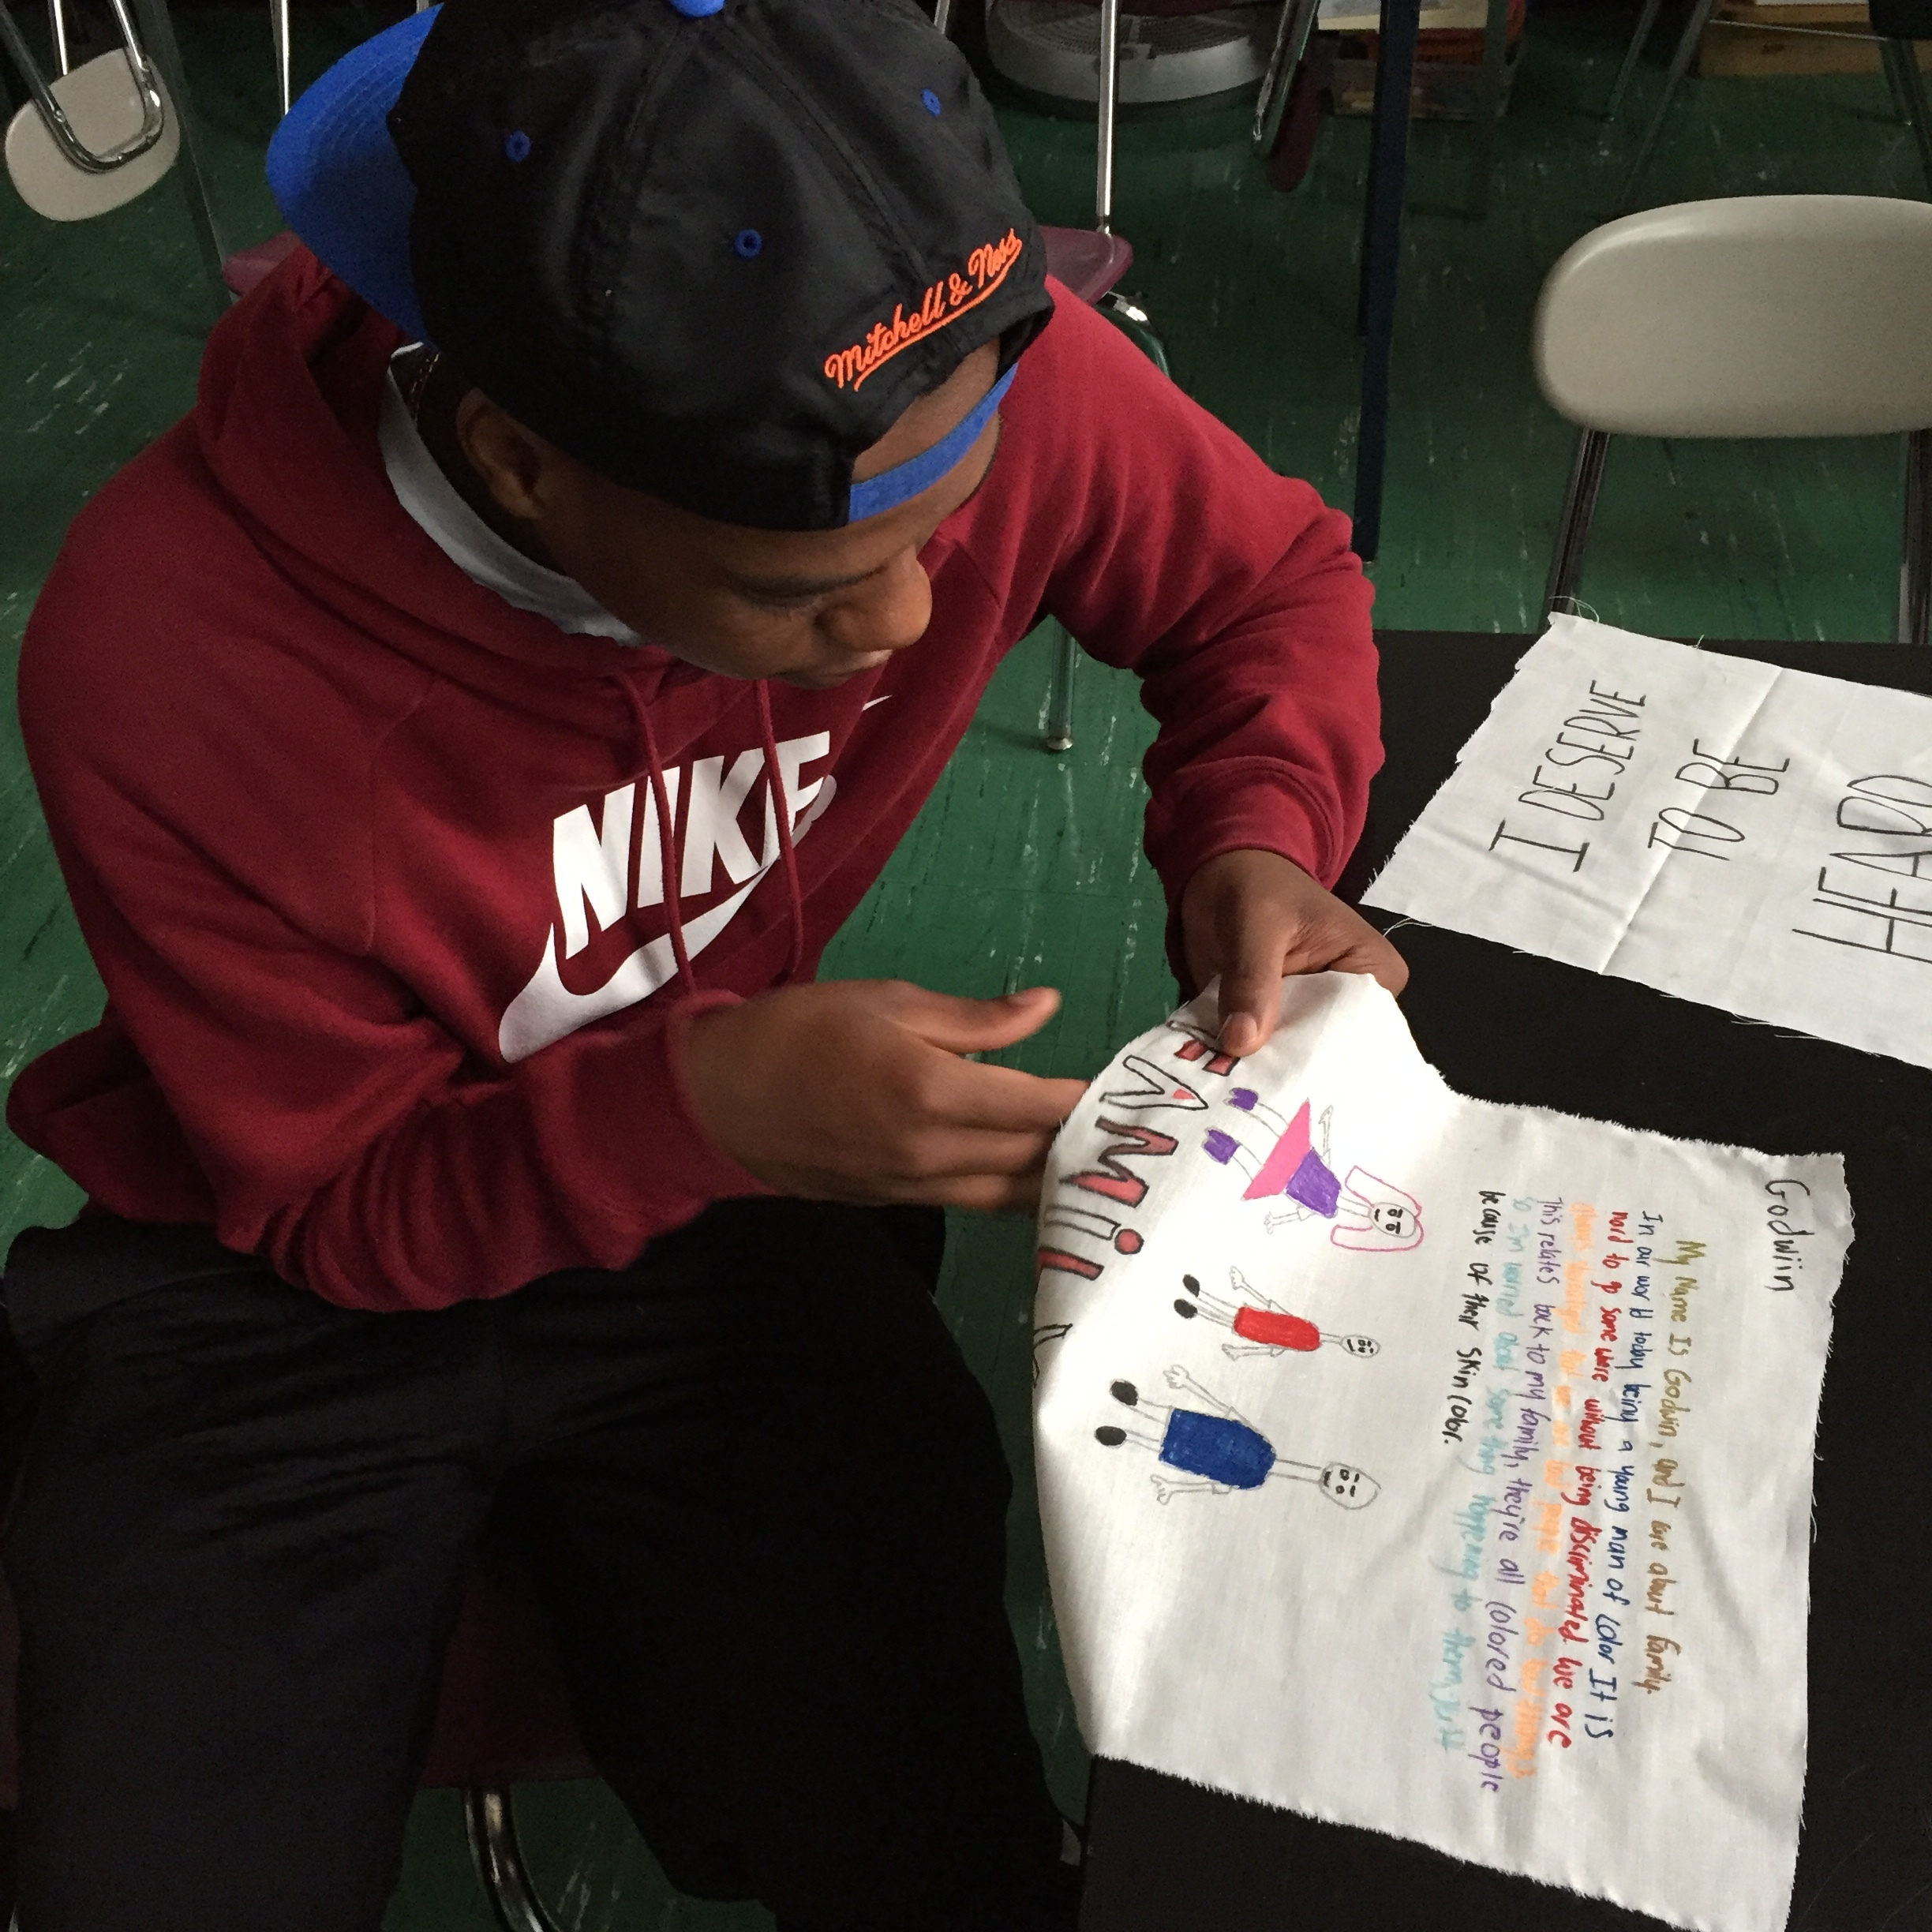 A student finishing his quilt piece drawing on bullying.